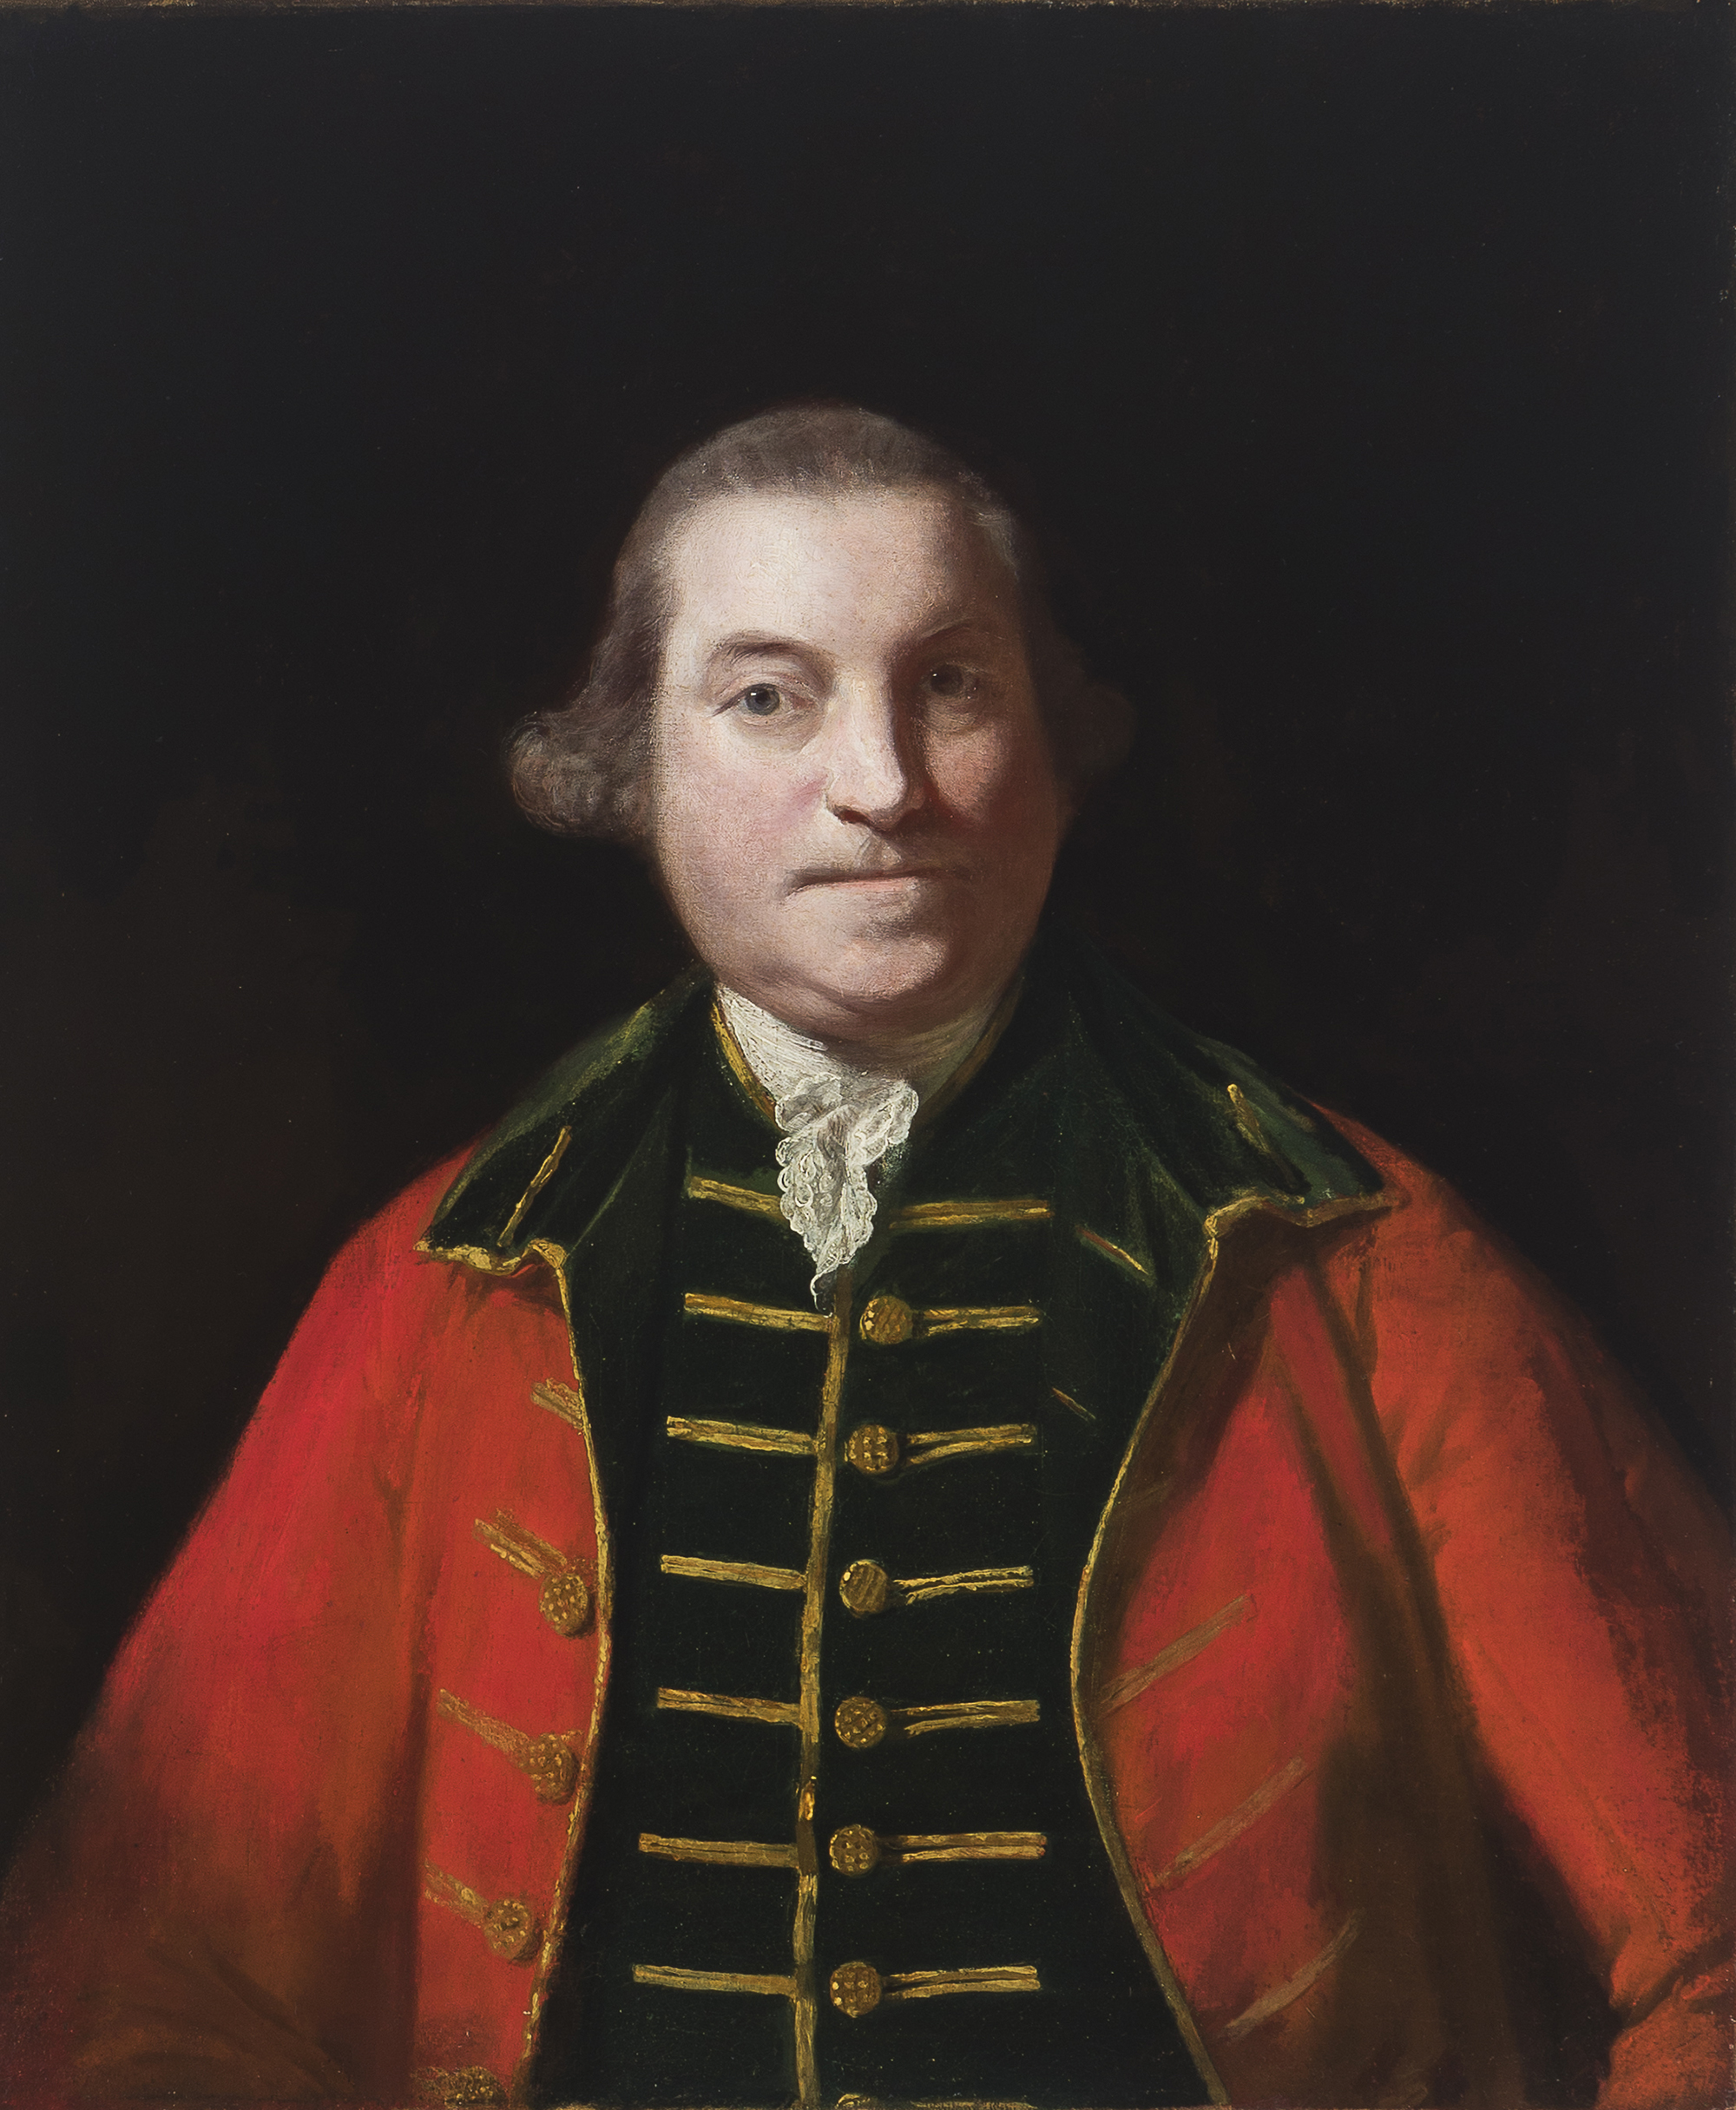 Sir Joshua Reynolds (1723-1792 British) Portrait of an officer, Oil on canvas laid to canvas, $15,000-25,000